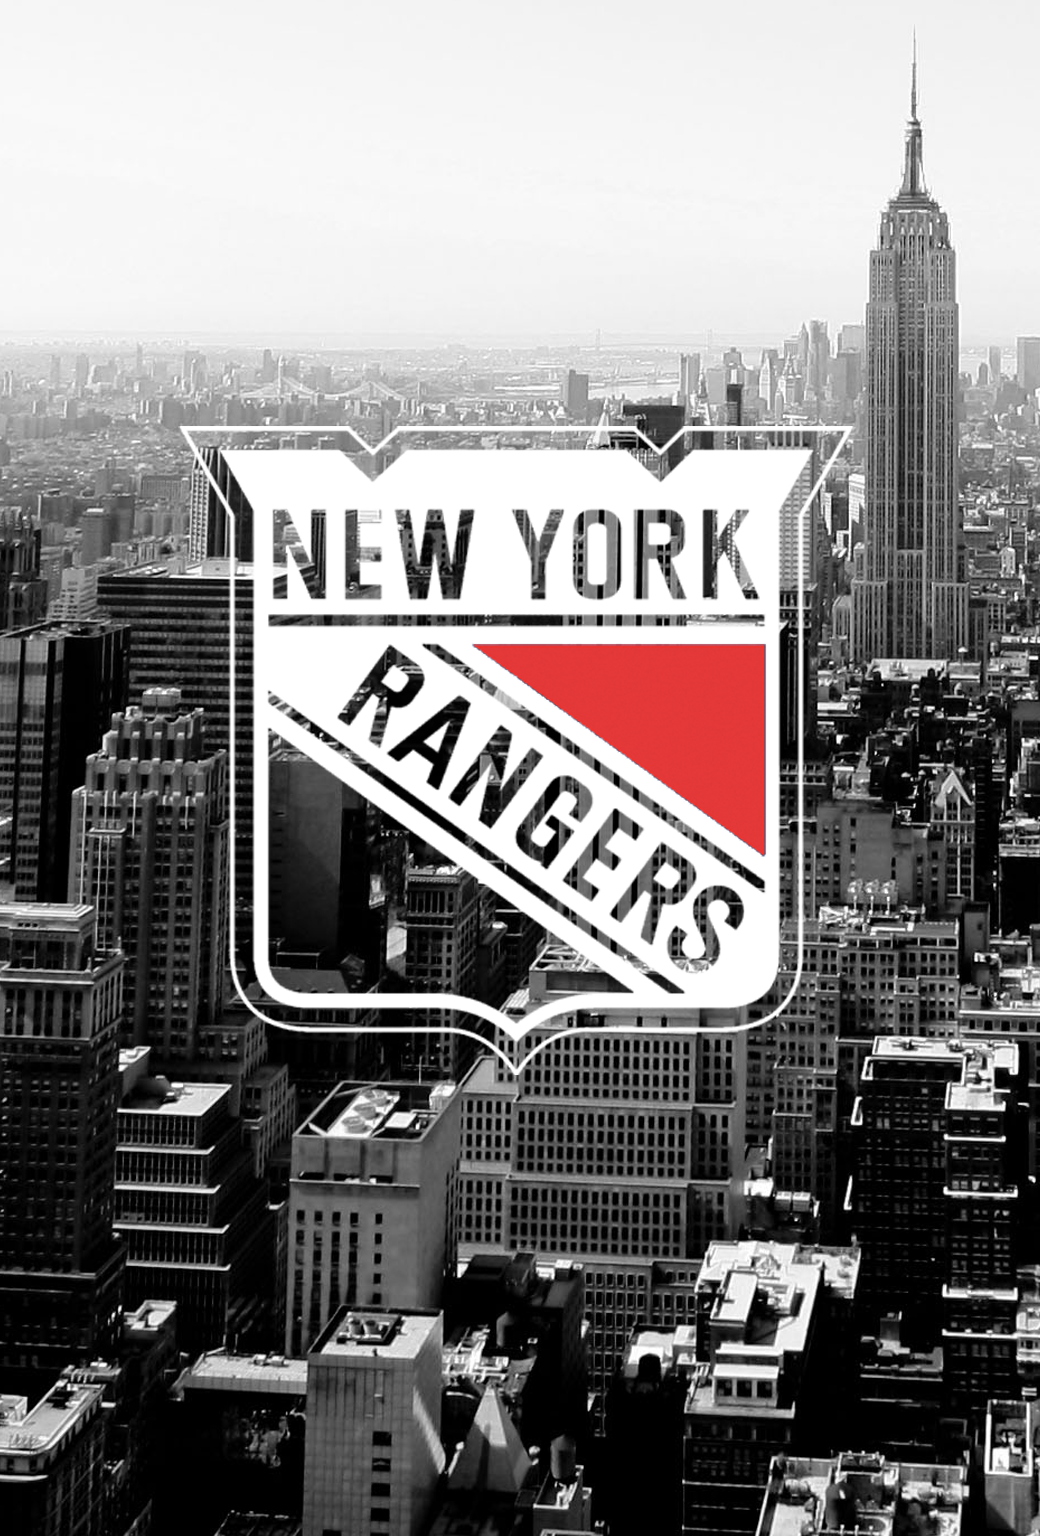 new york rangers iphone wallpaper wallpapersafari